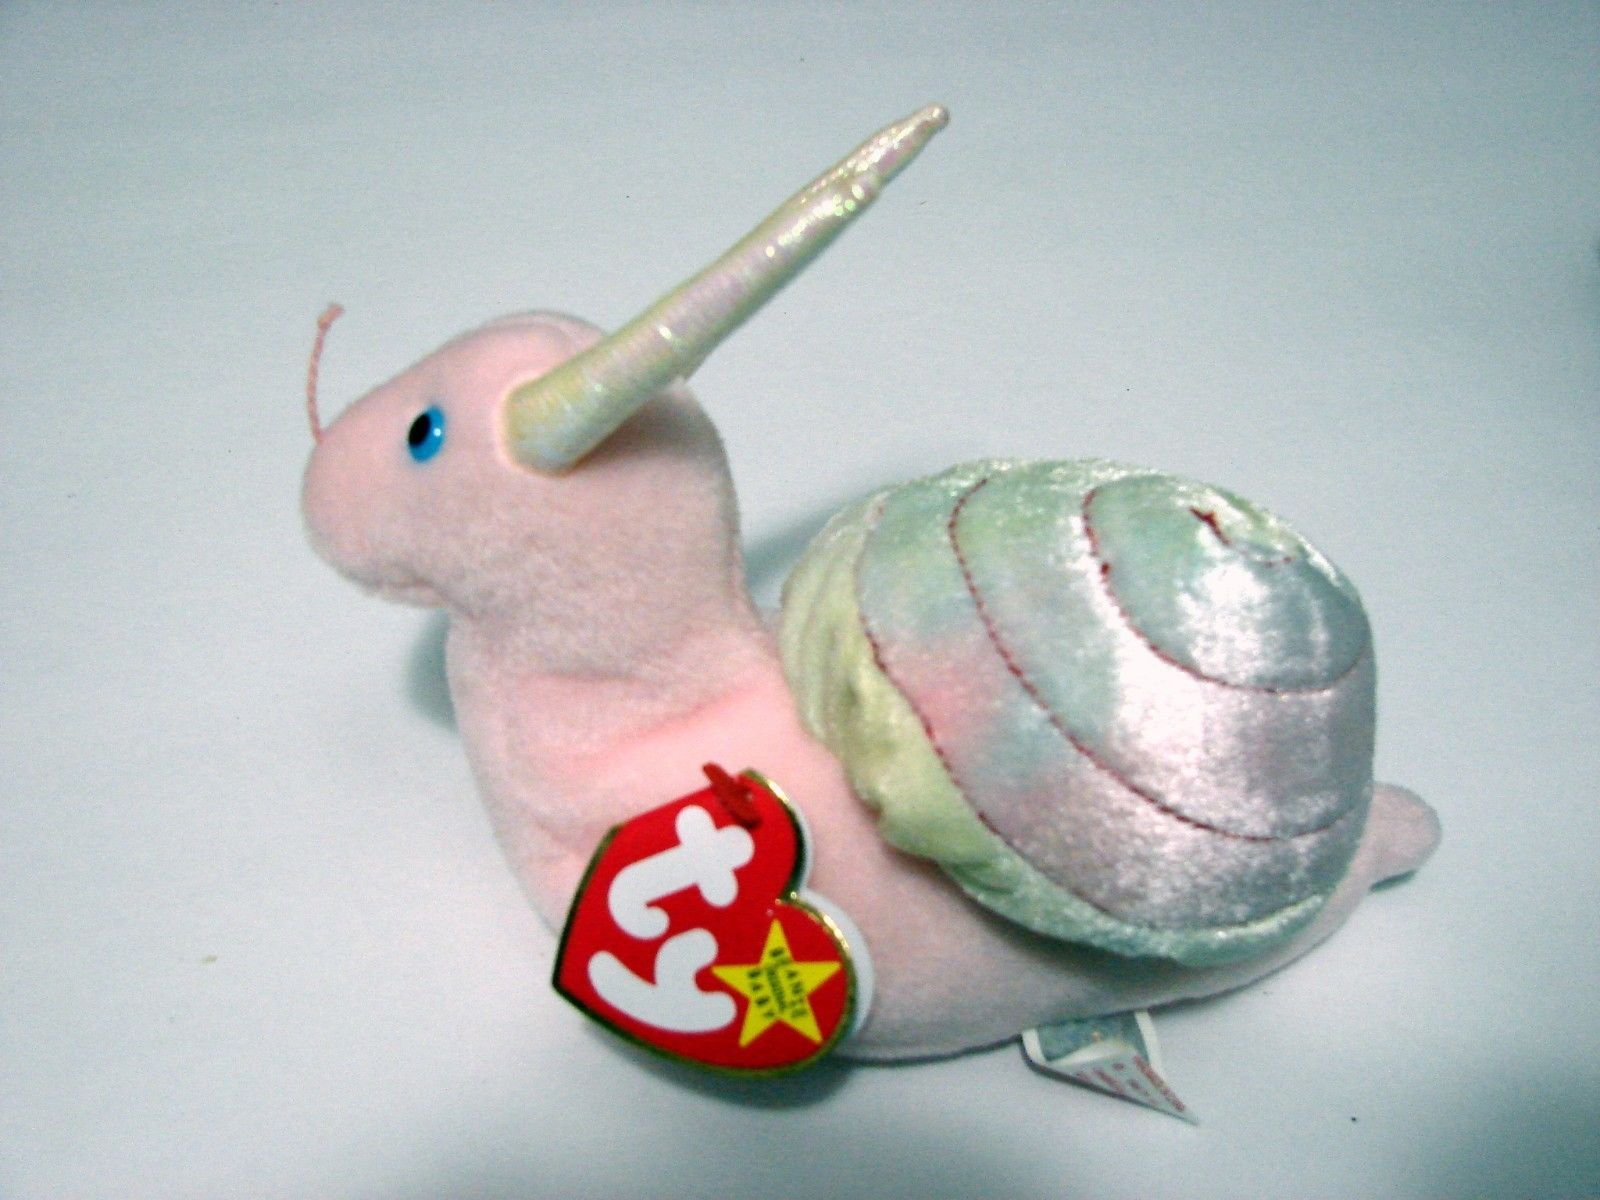 8e29122f303 1999 TY Beanie Baby SWIRLY the Snail Never and similar items. S l1600